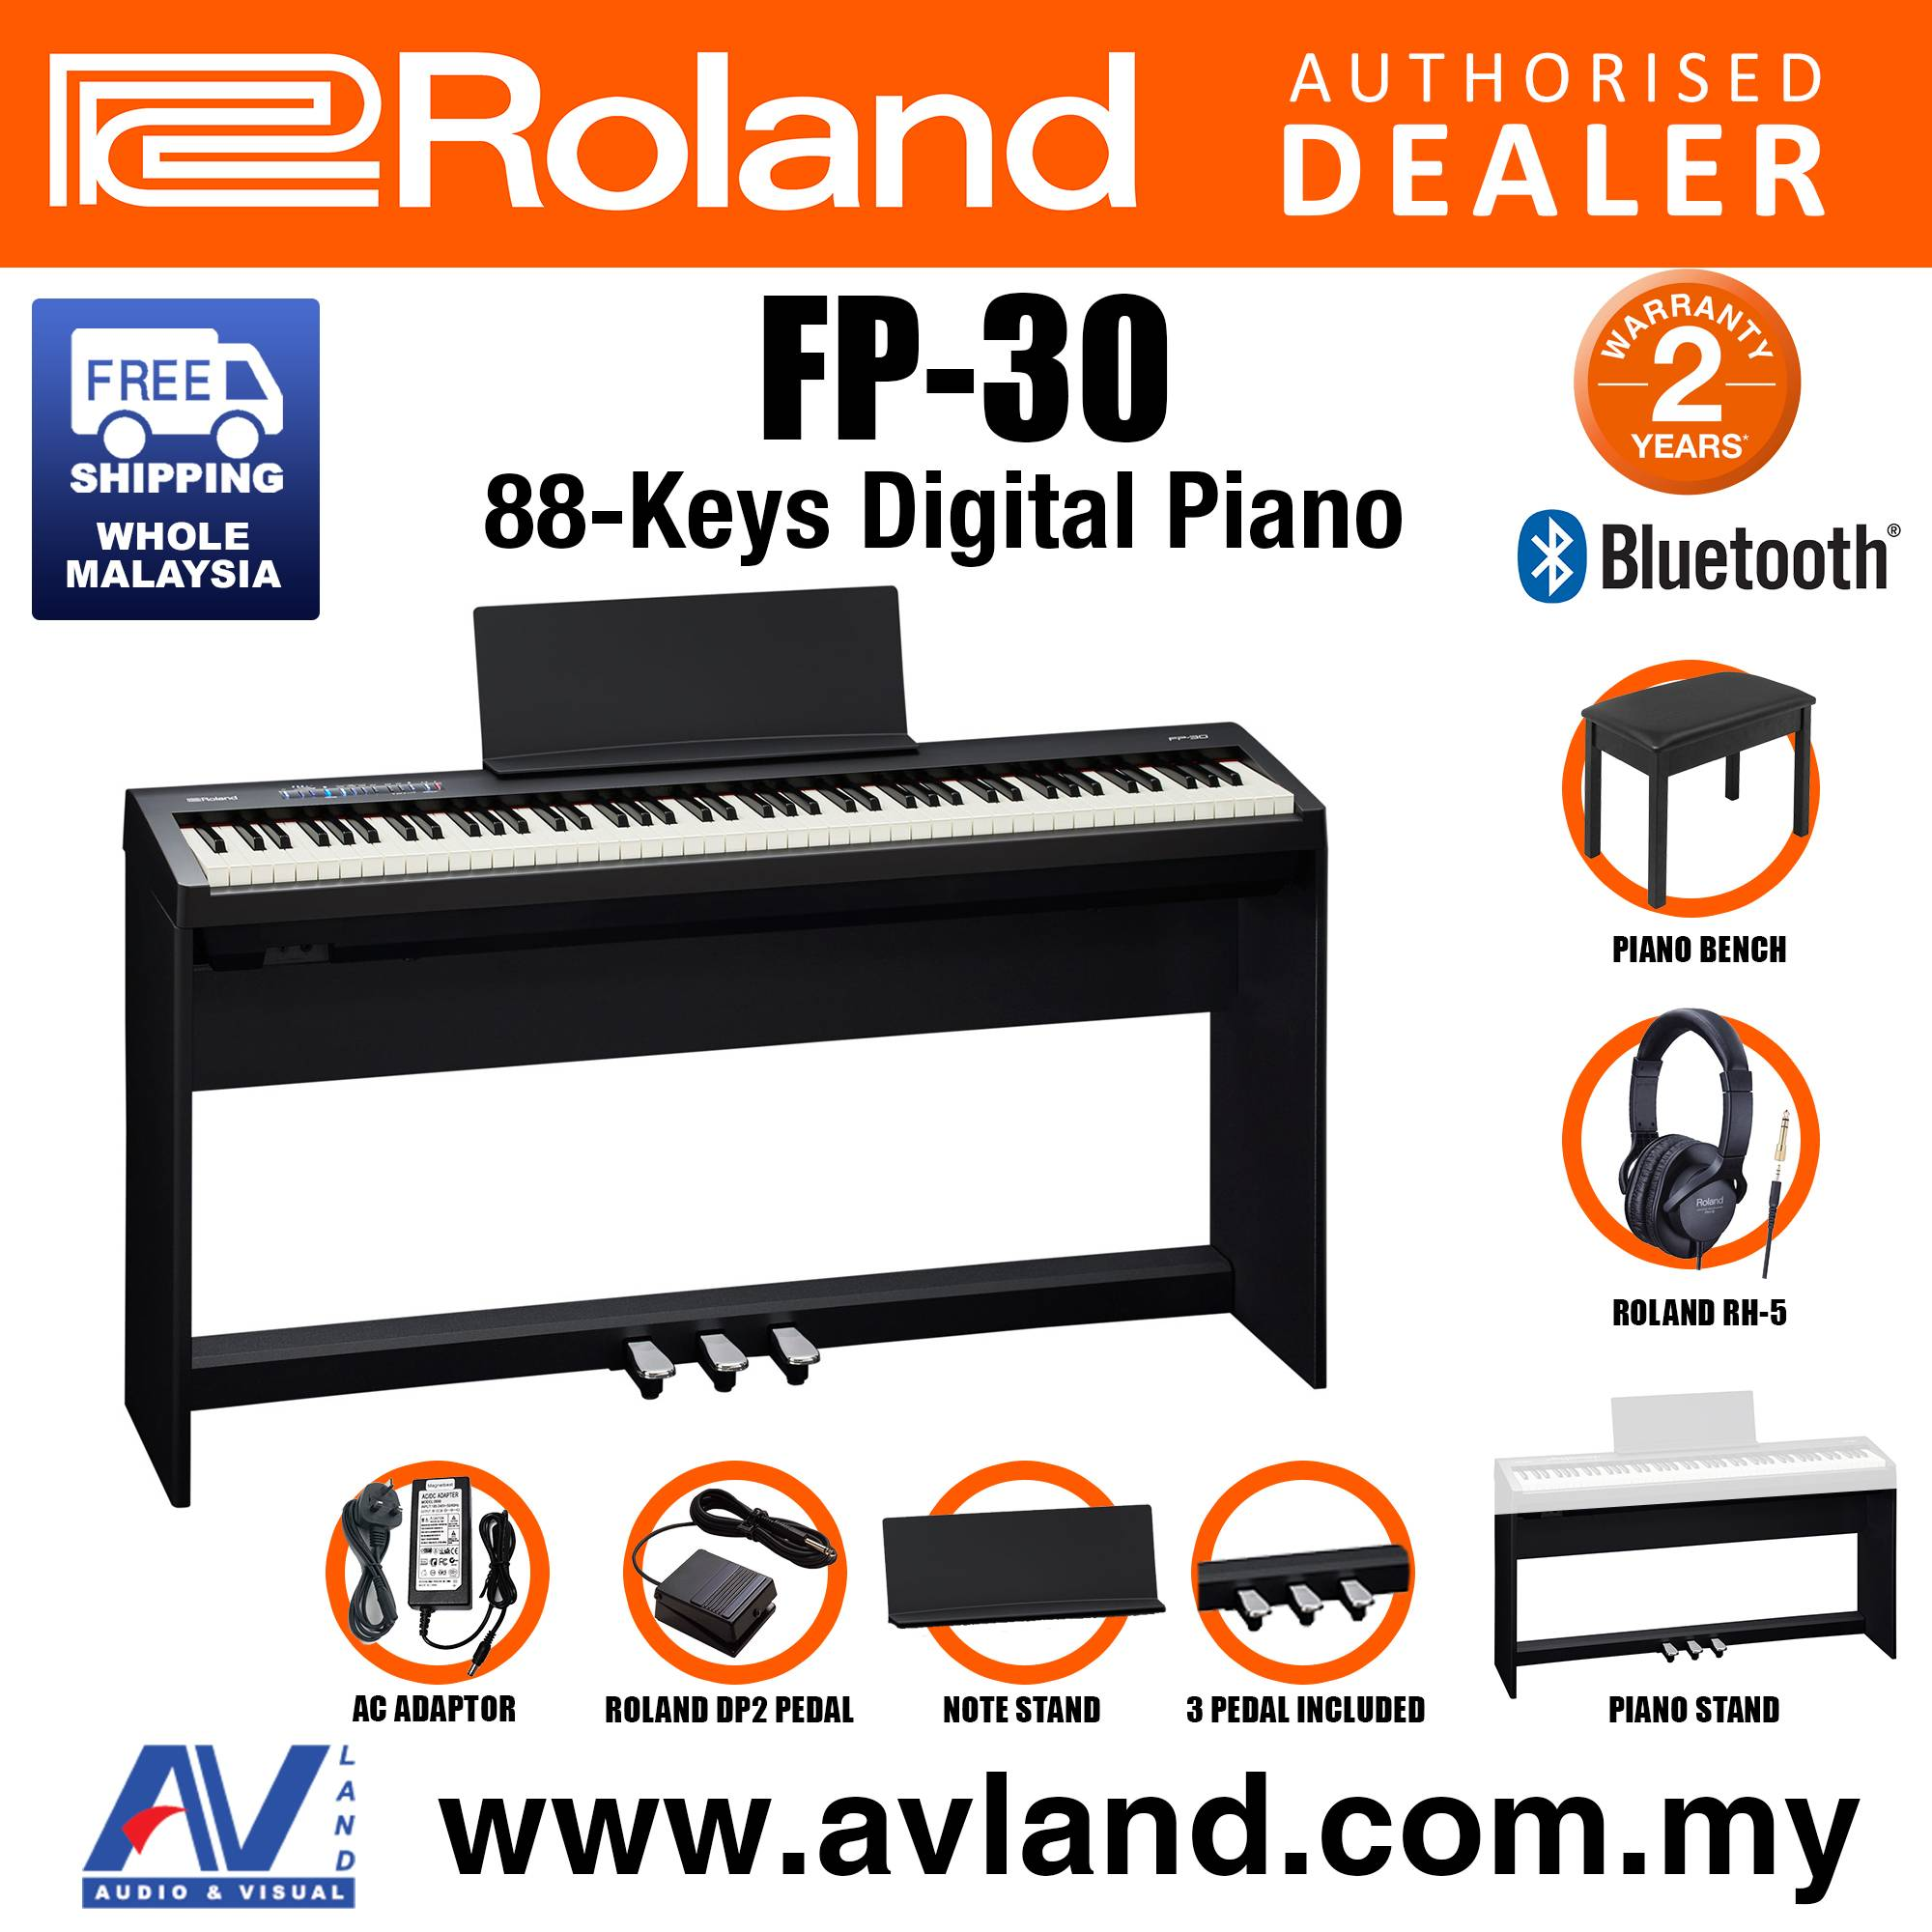 Roland Fp 30 88 Key Digital Piano Home Package With Piano Bench Rh 5 Headphone Pedals